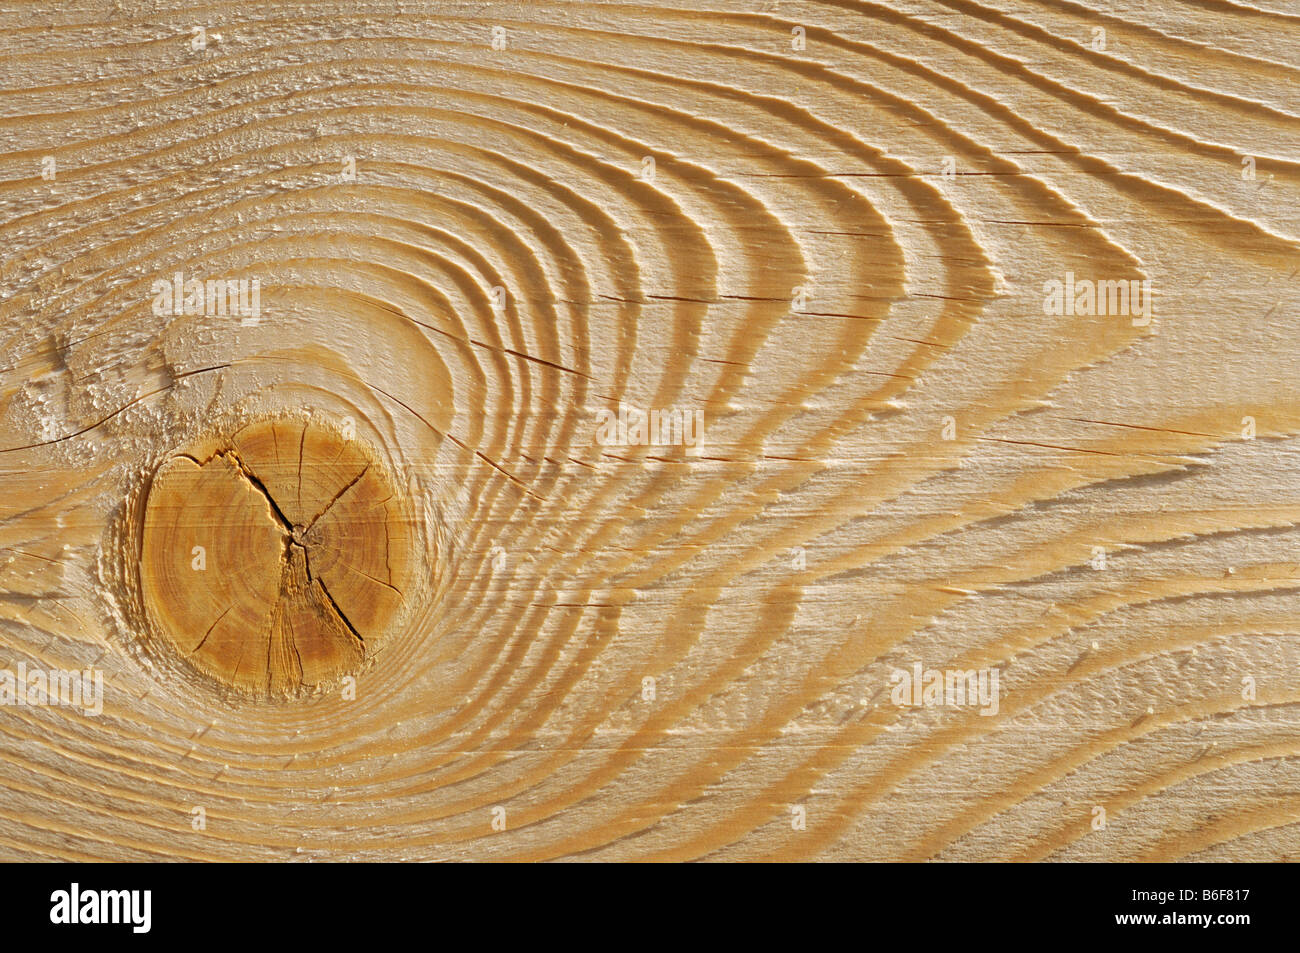 Wooden plank, detail showing a knot, grain and plane marks - Stock Image